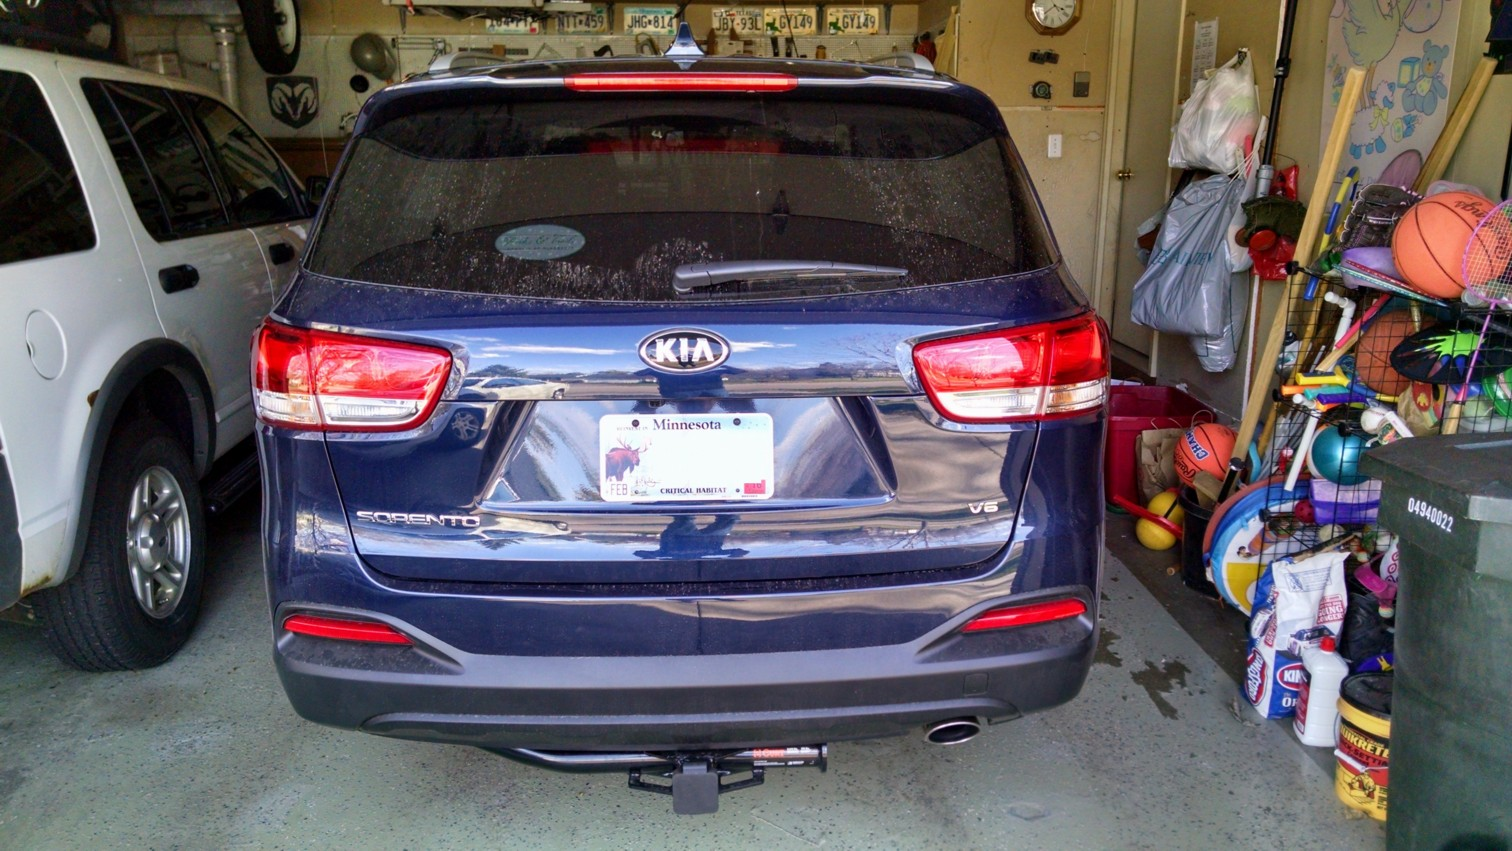 I want to get a trailer hitch Page 2 Kia Forum